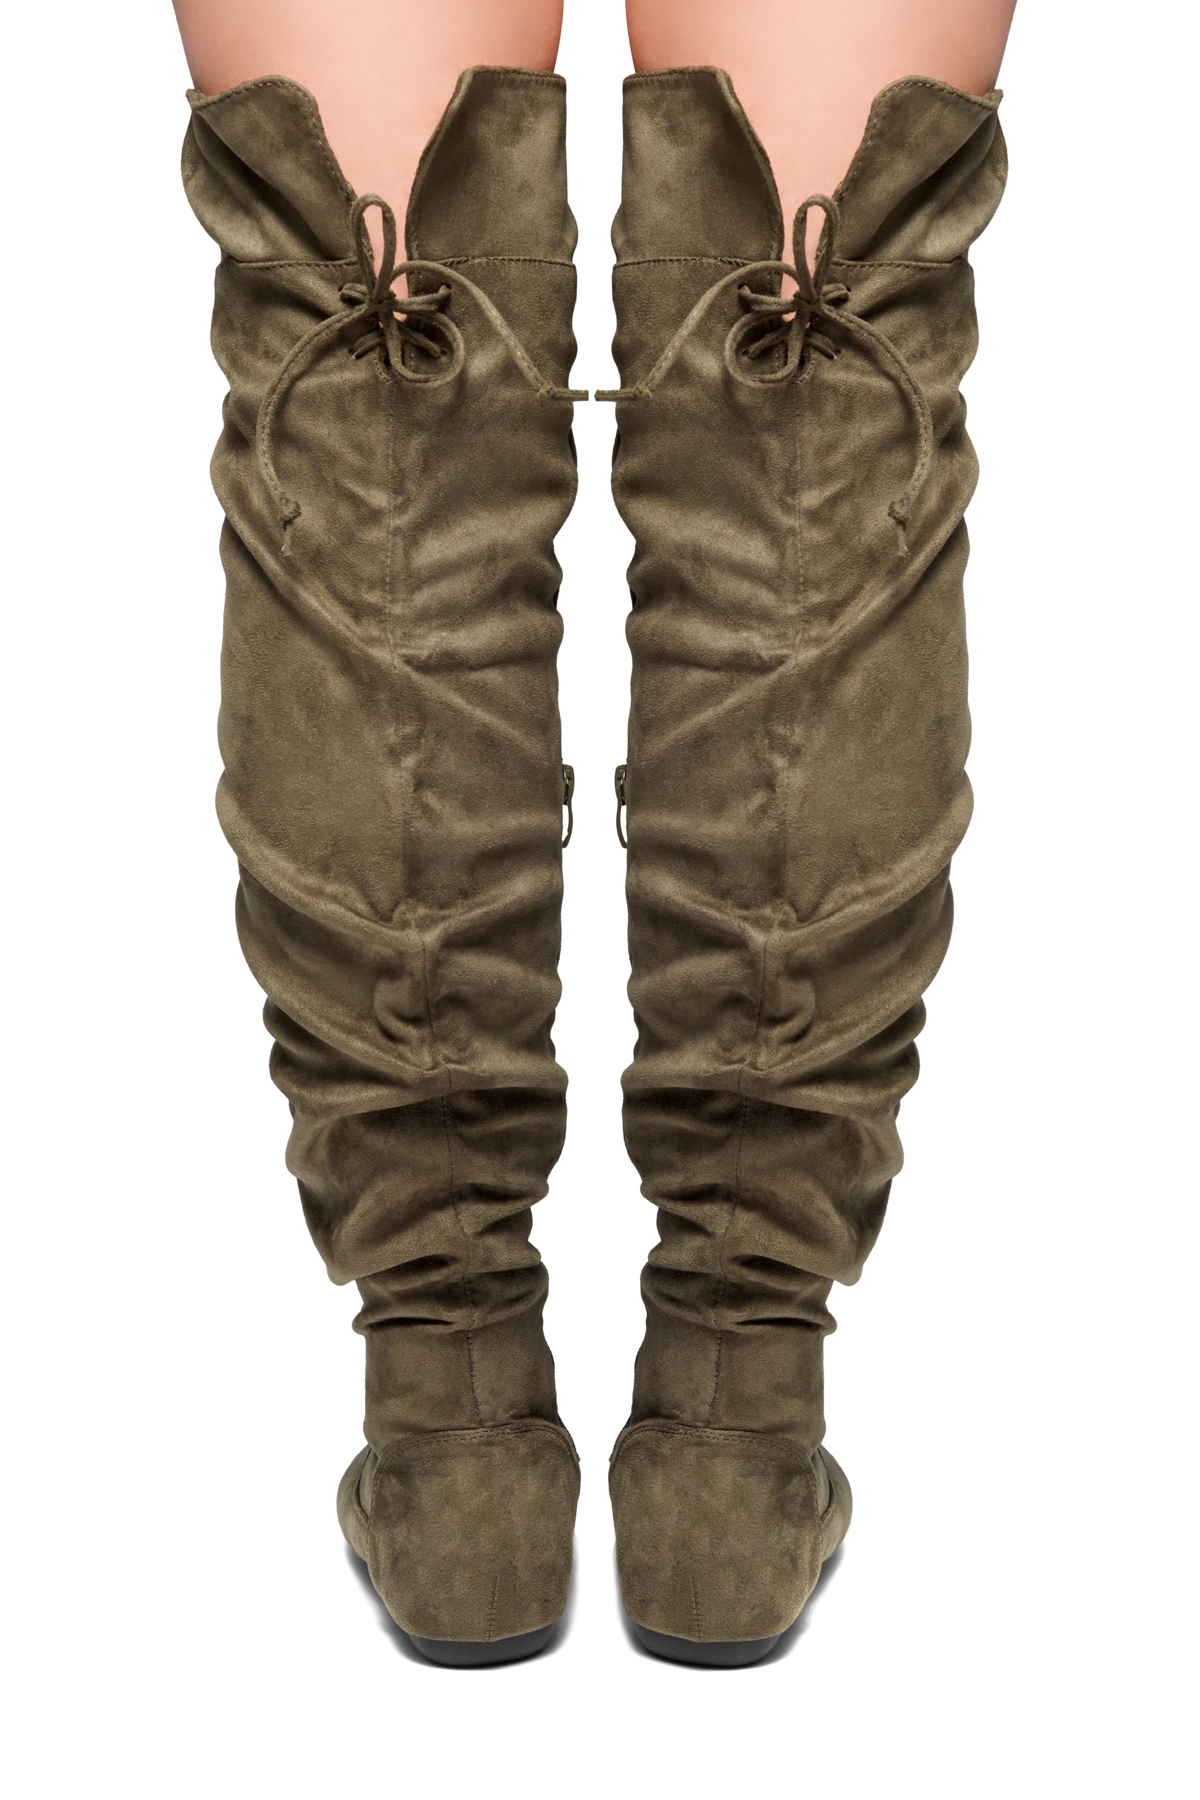 4b9711605bd3 ... HerStyle Lauurren Faux Suede Thigh High Boots - olive ...